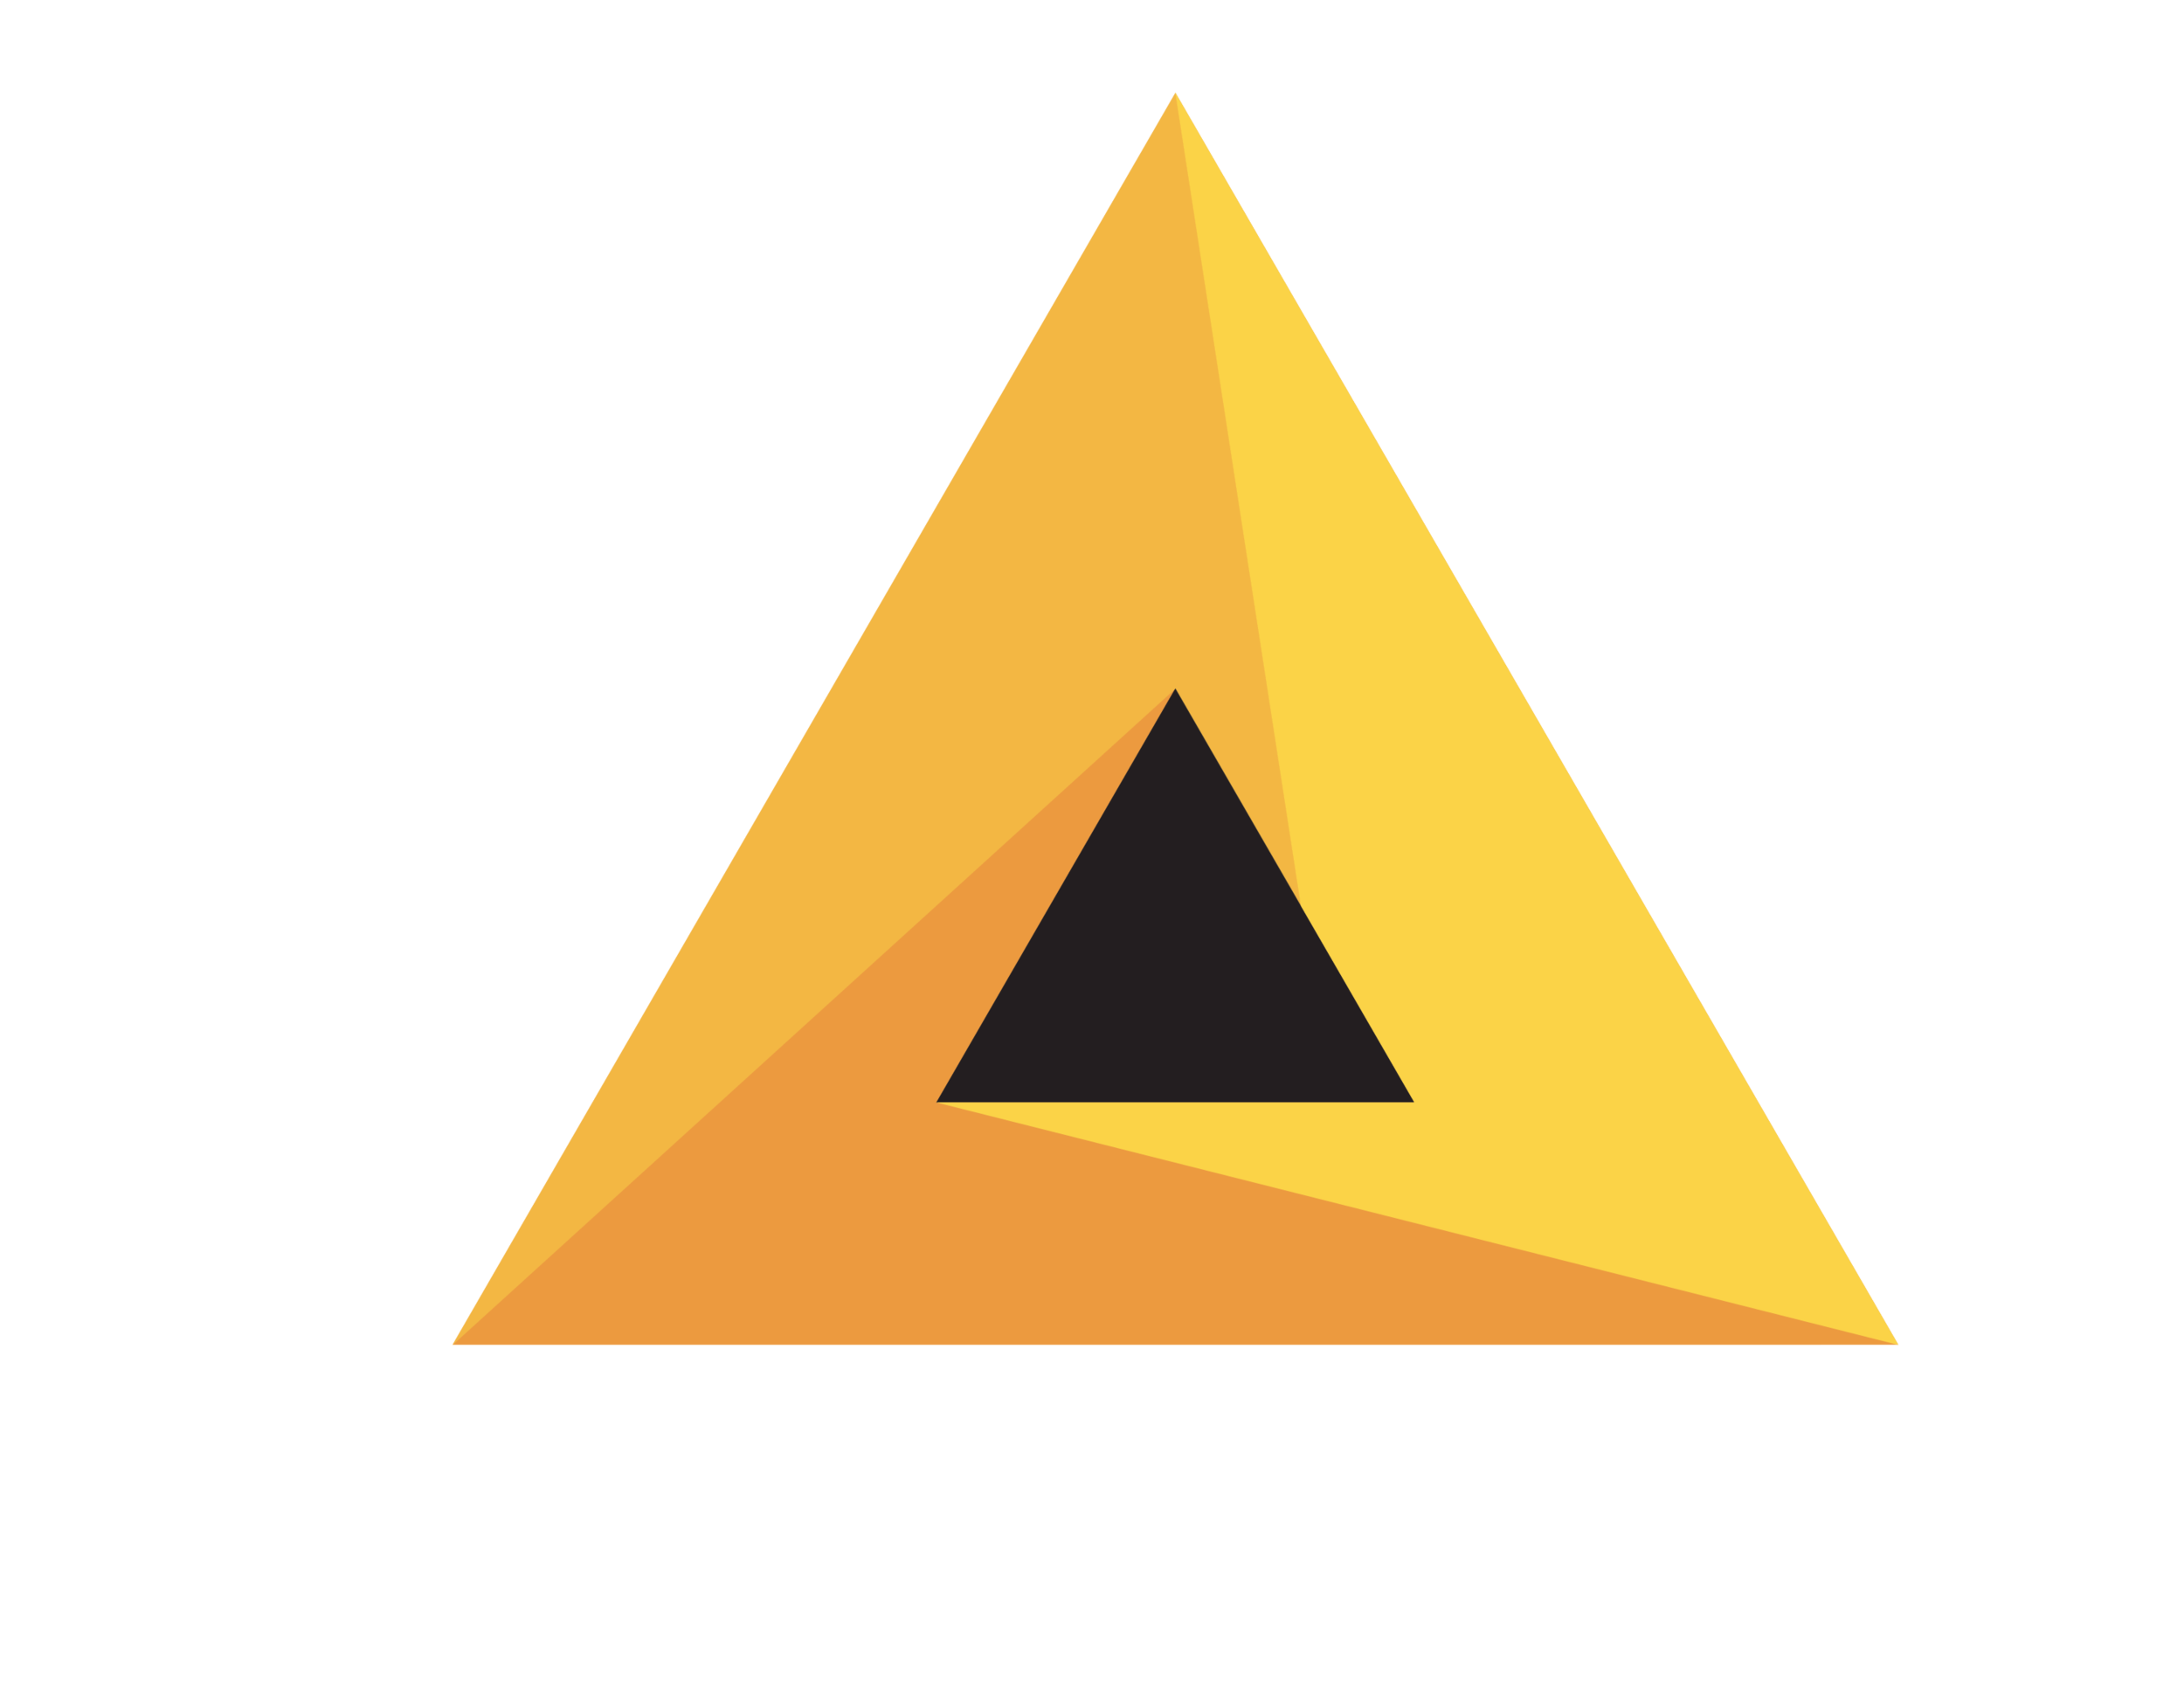 master the audience Engagement Framework™ - You'll learn the 3 keys that will help you maximize the effectiveness of your digital signage:• Use Design to attract eyes and create clarity• Use Data to deliver personalized content• Use Devices according to the purpose at hand